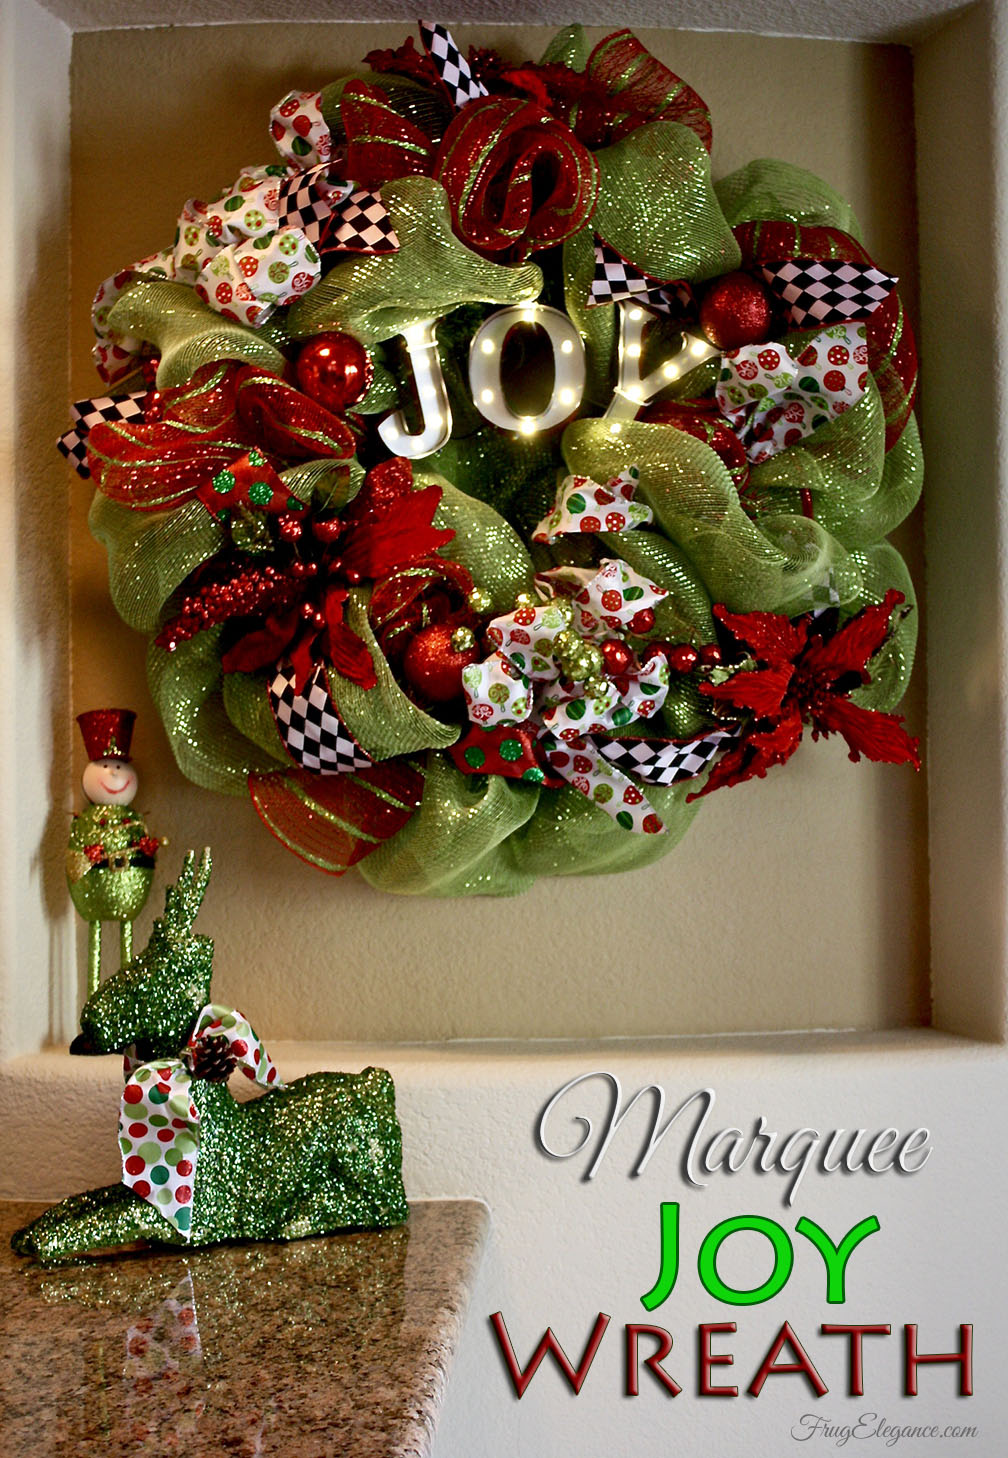 living room realtors sample paint colors a christmas joy marquee wreath - frugelegance